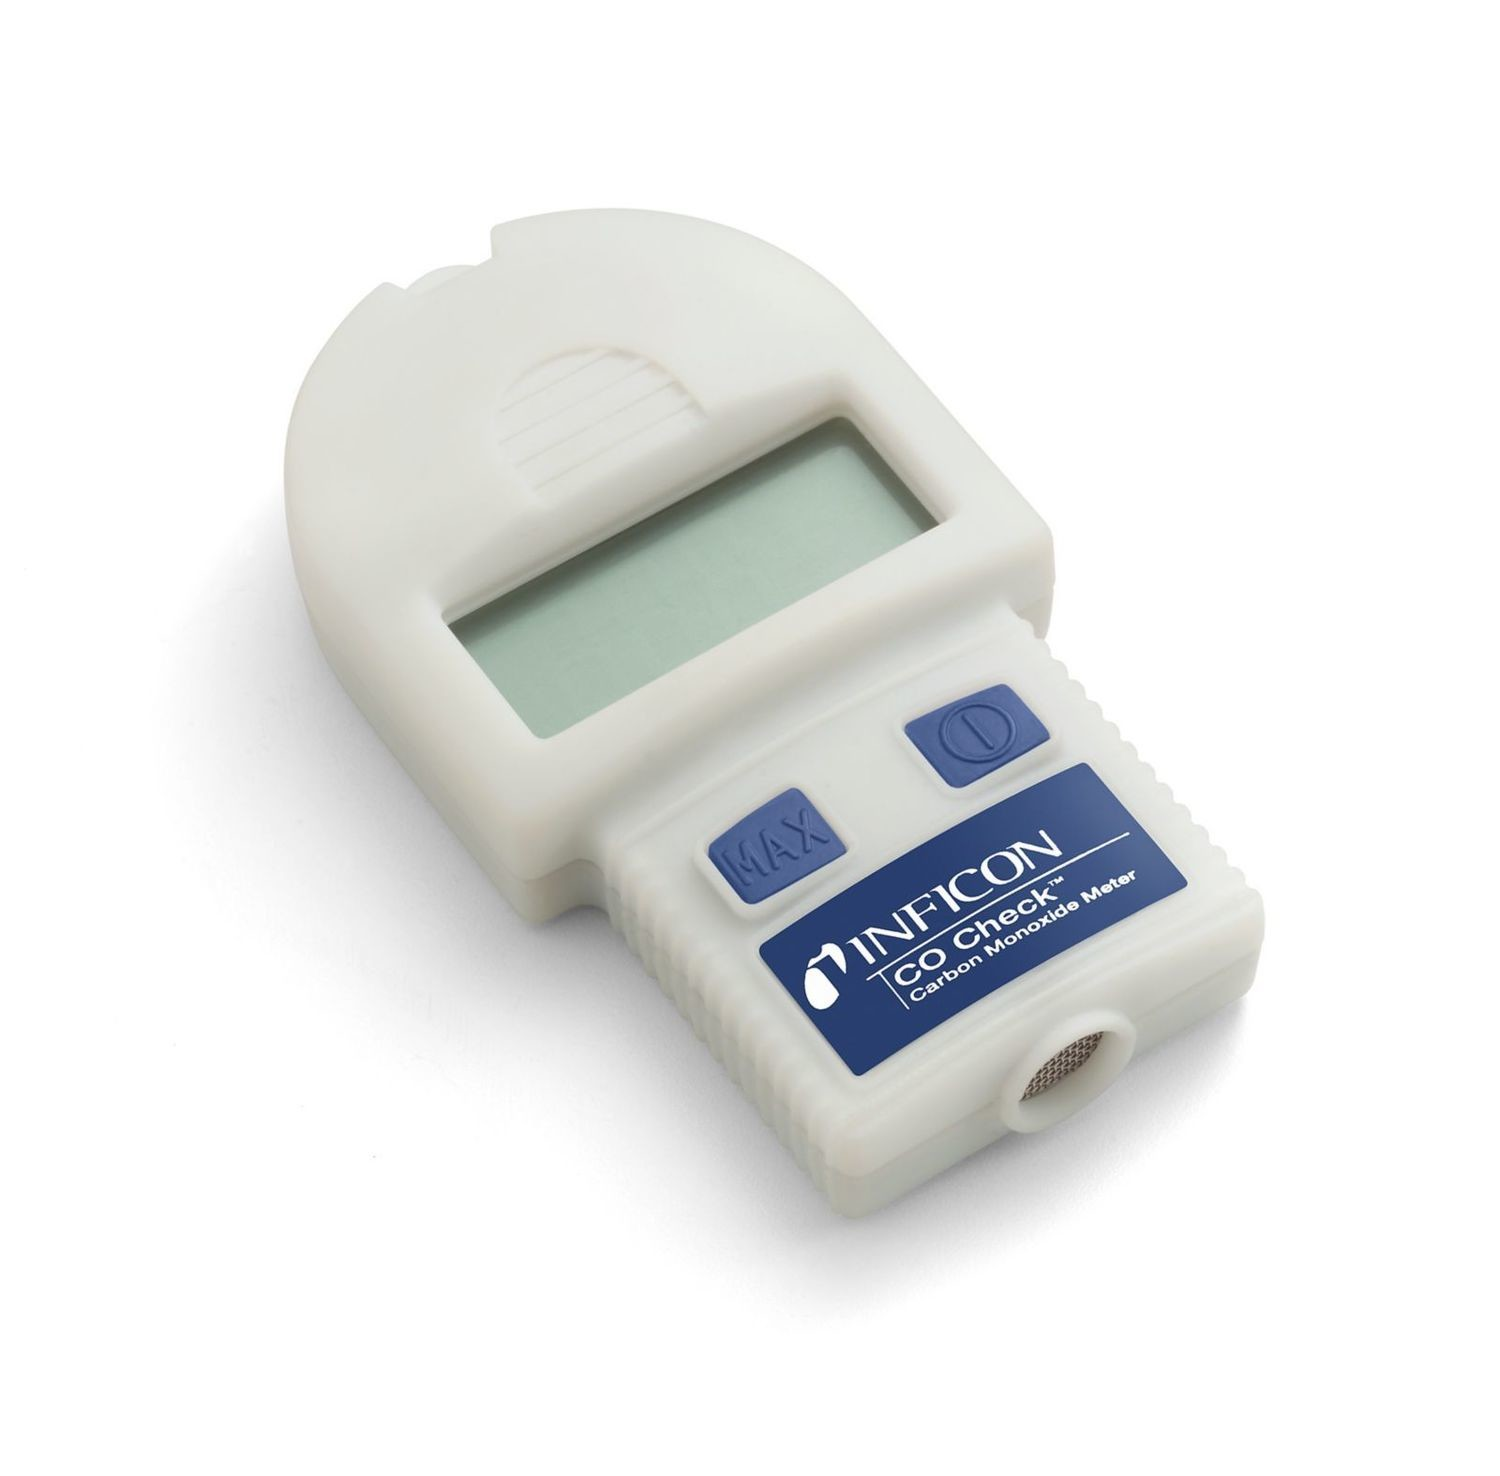 Inficon - 715-202-G1 - Carbon Monoxide Meter With Installation